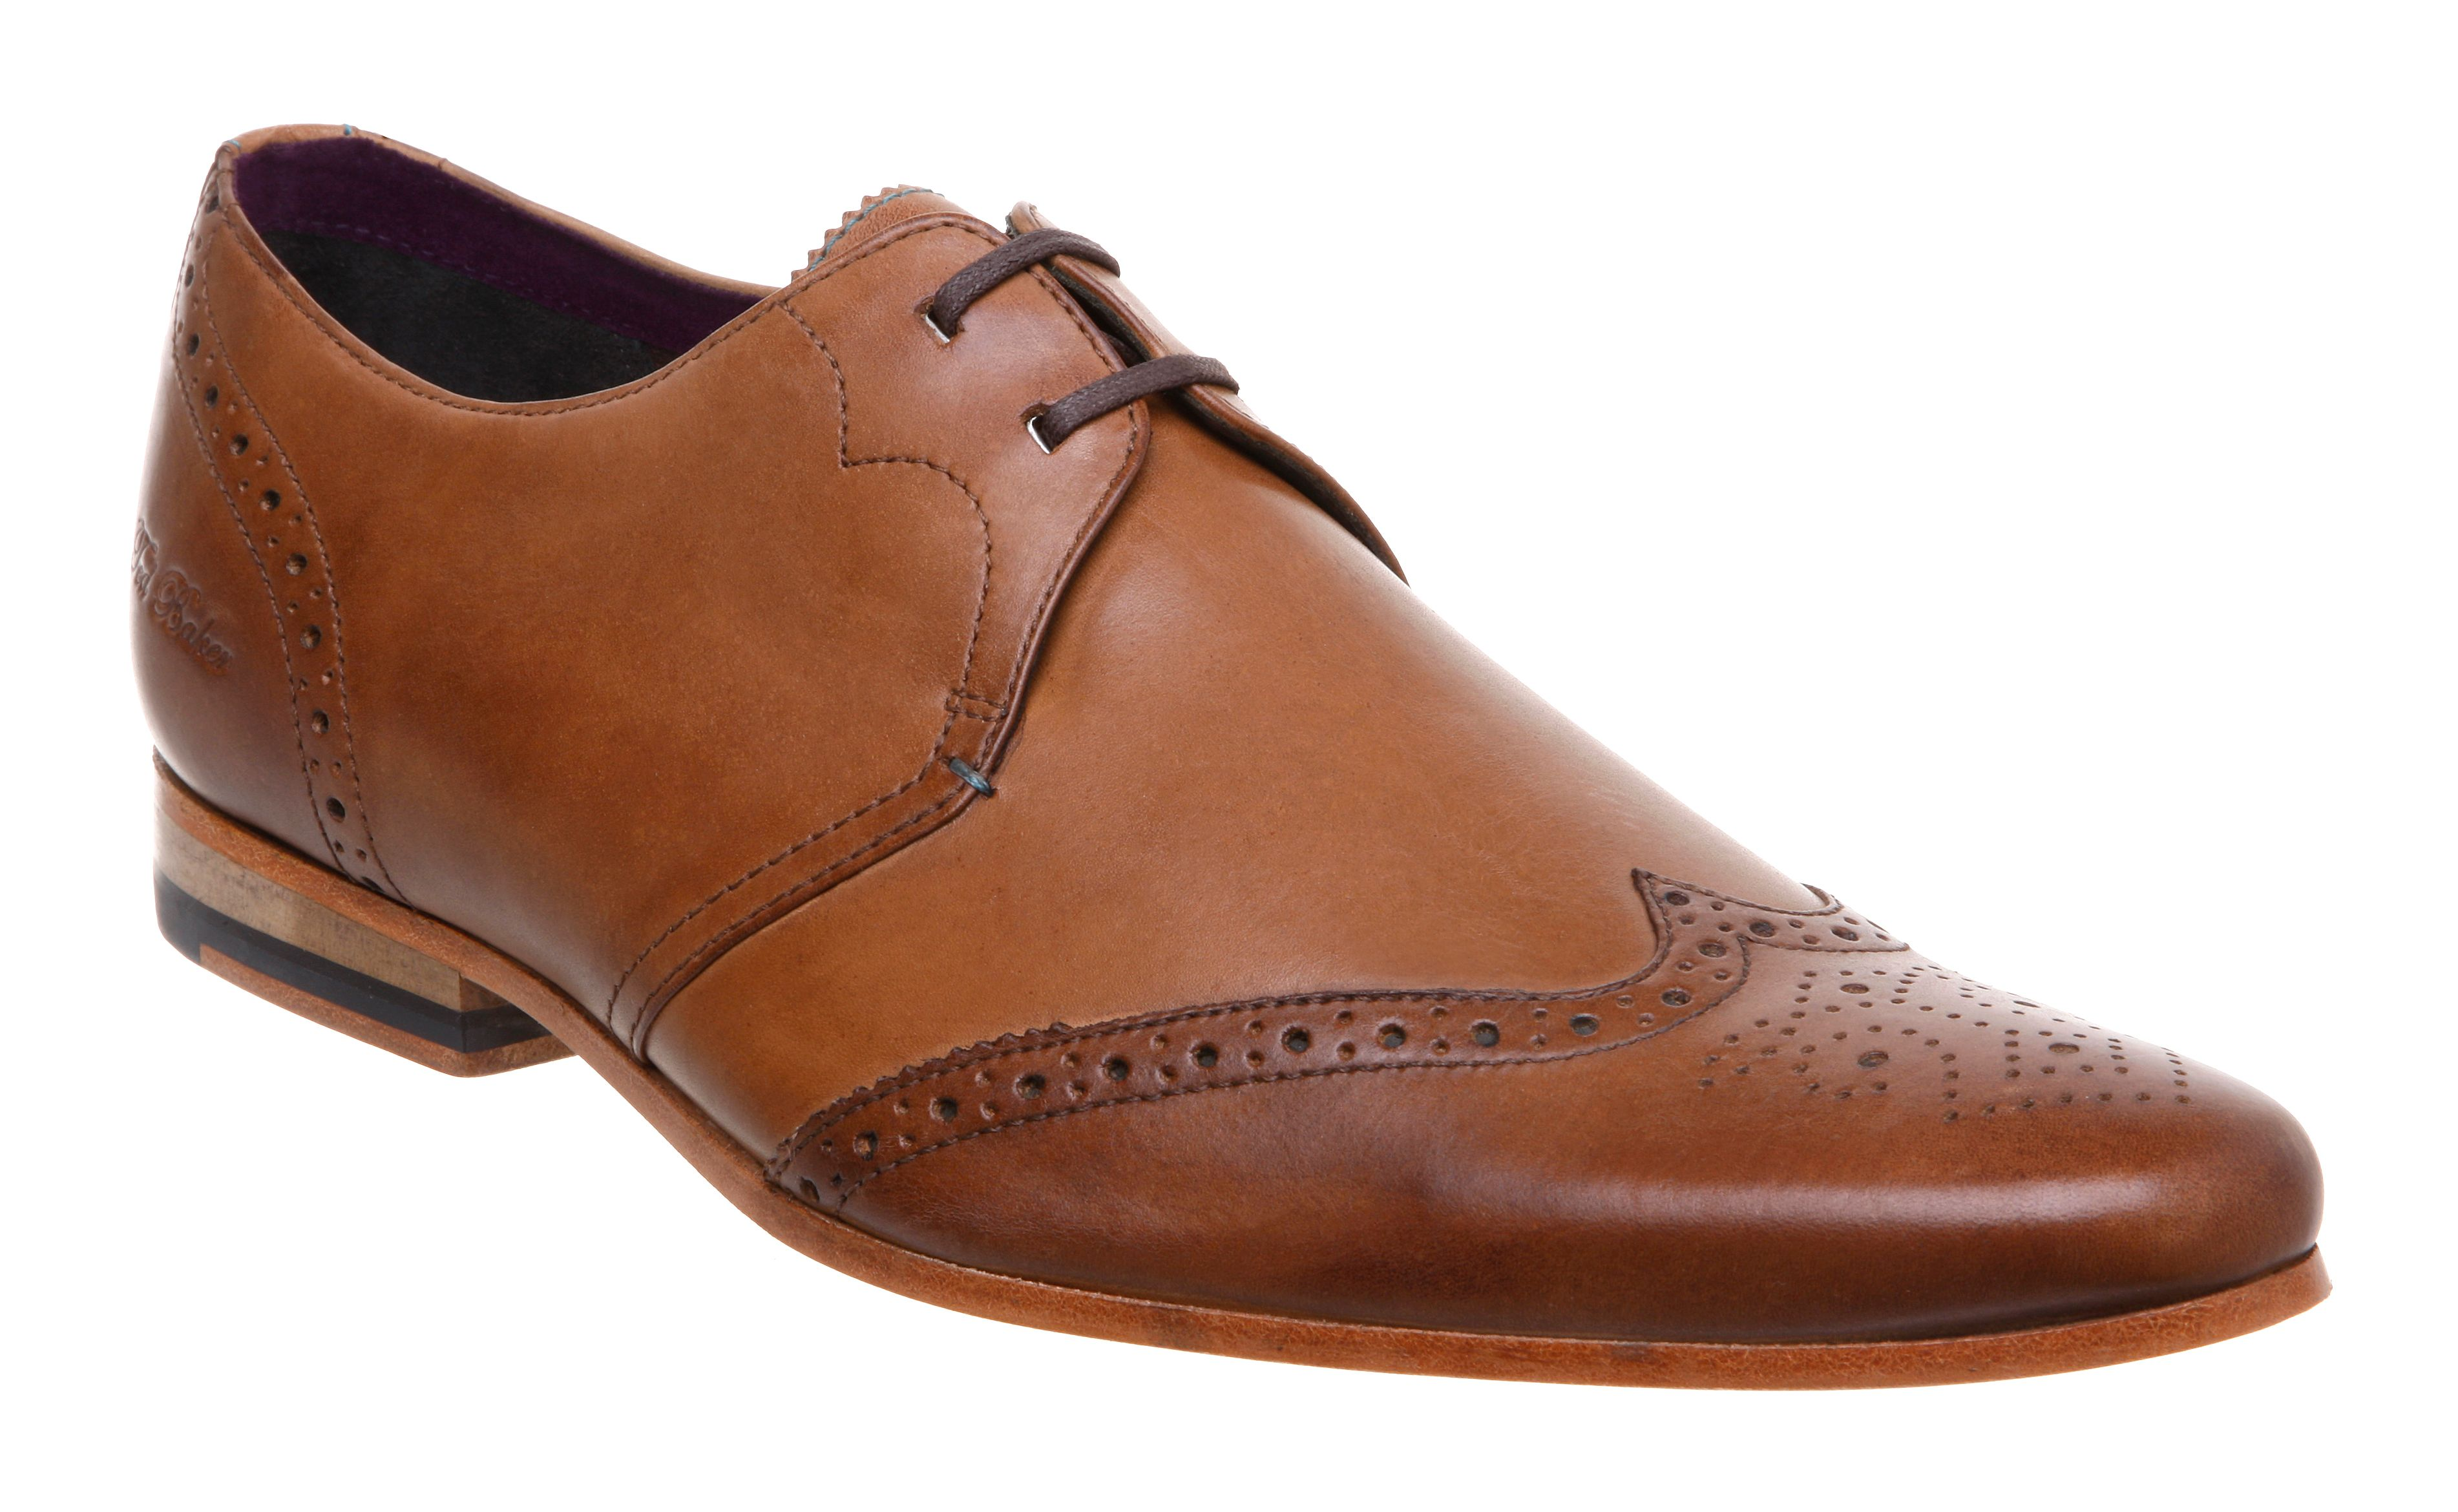 Greco Derby Shoes